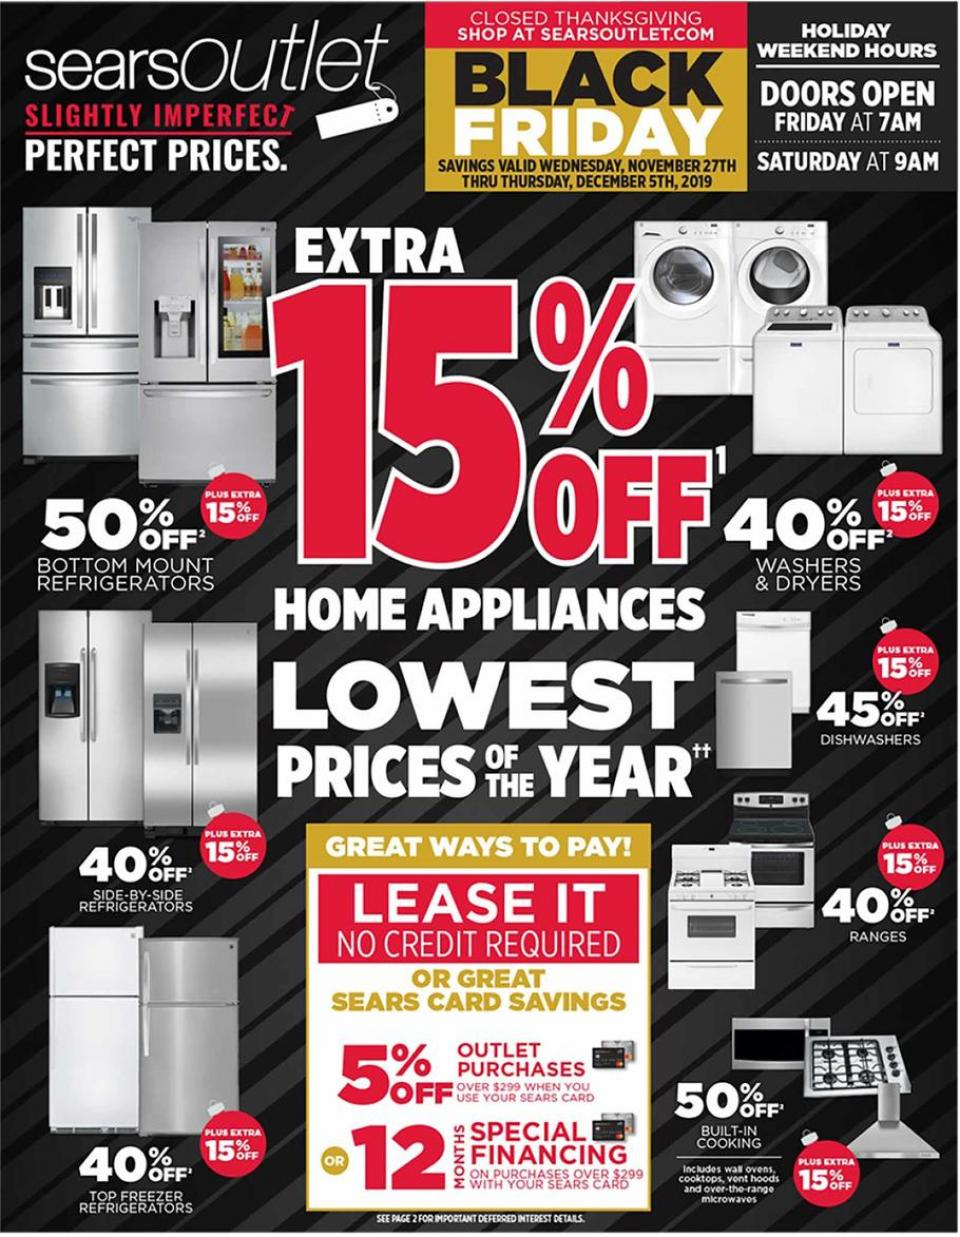 Sears Outlet black friday ad